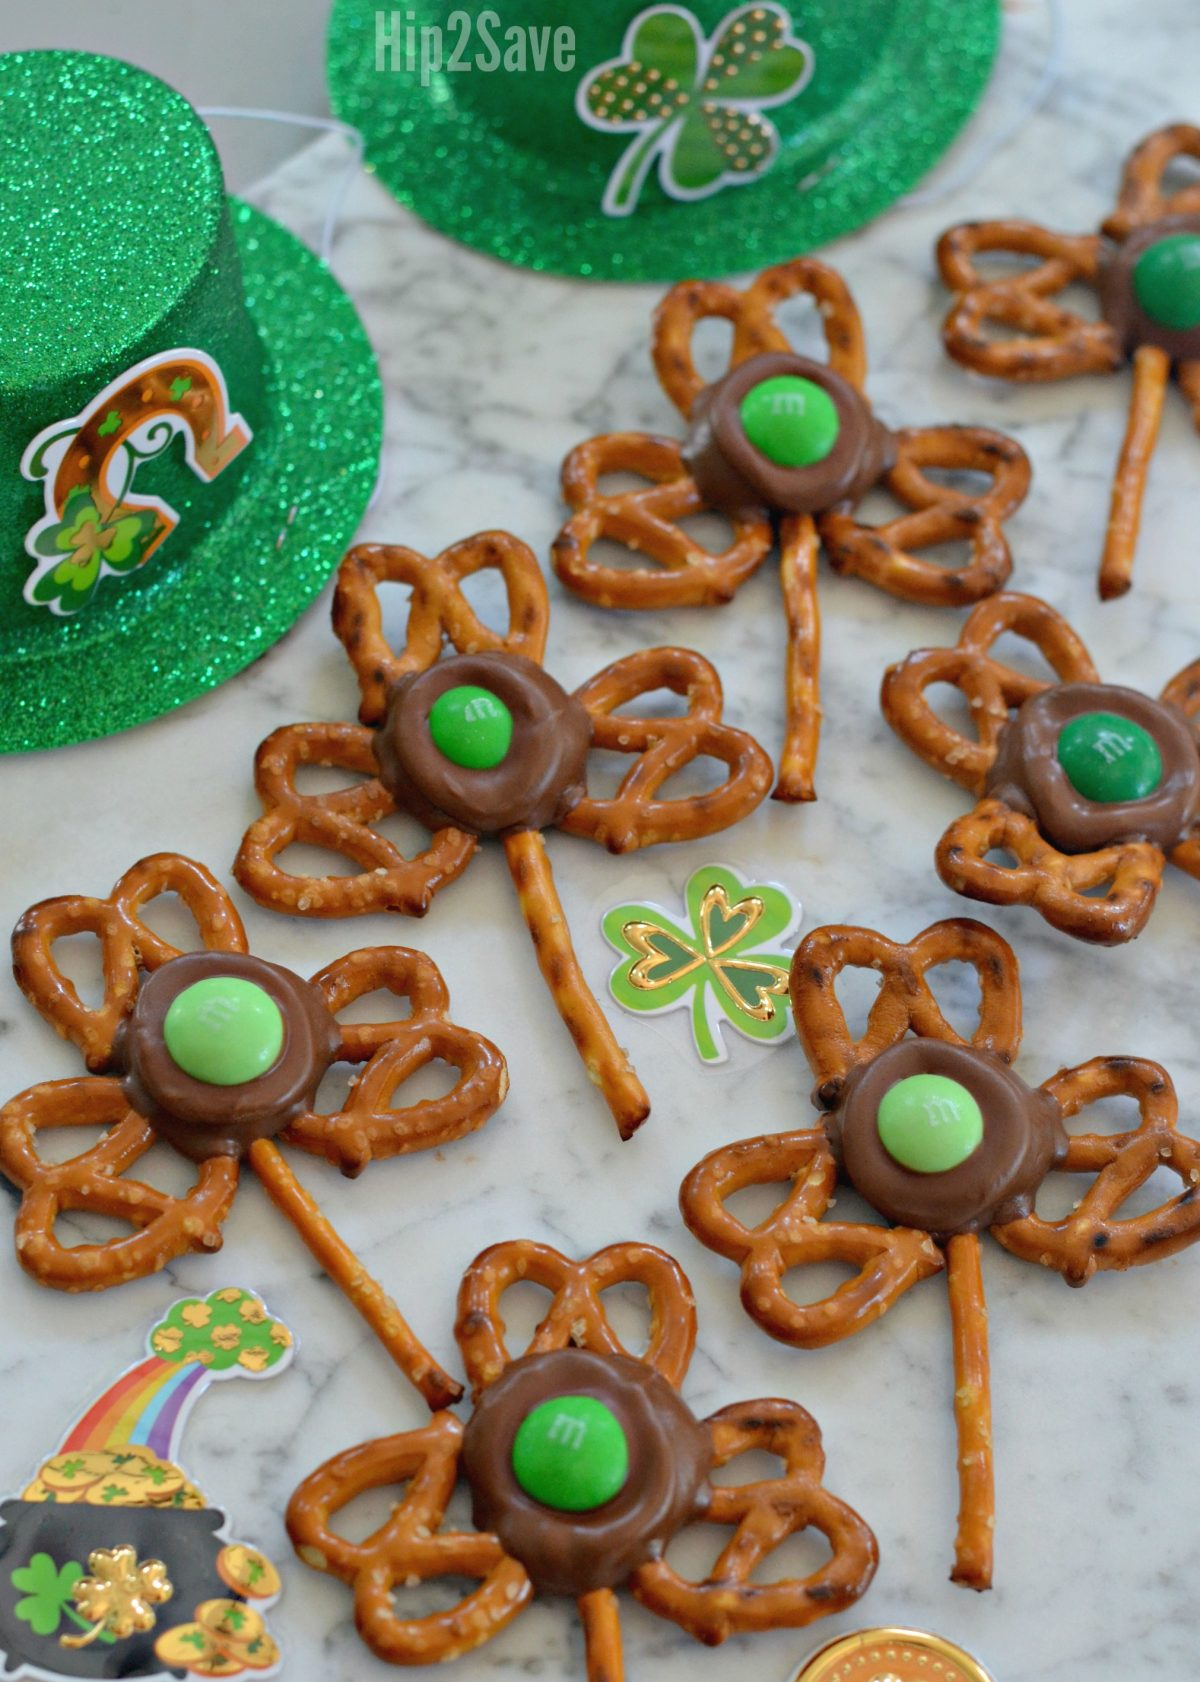 st patricks day snacks shamrocks next to green party hats